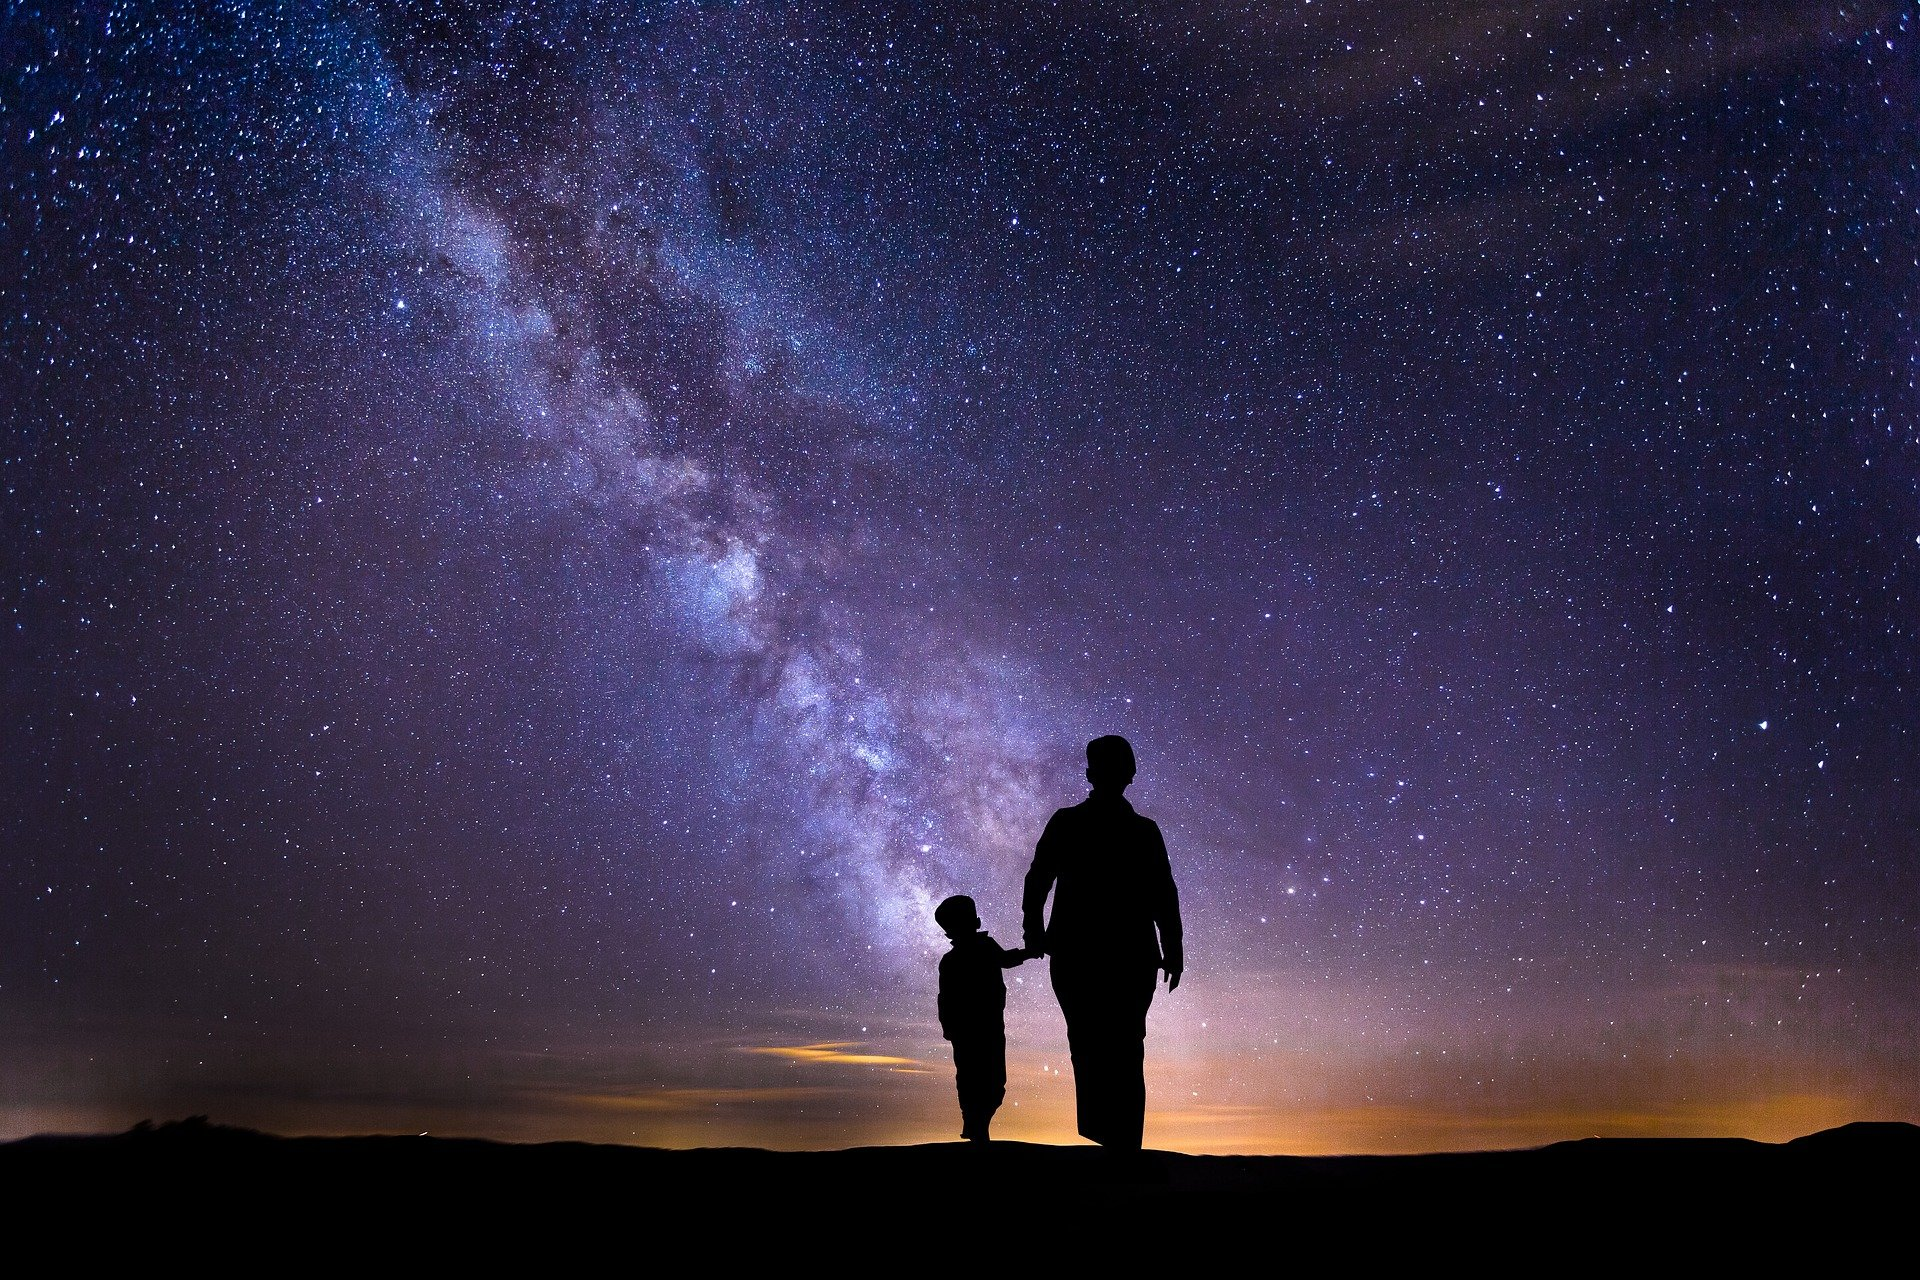 person and a child walking on a dark night under the stars